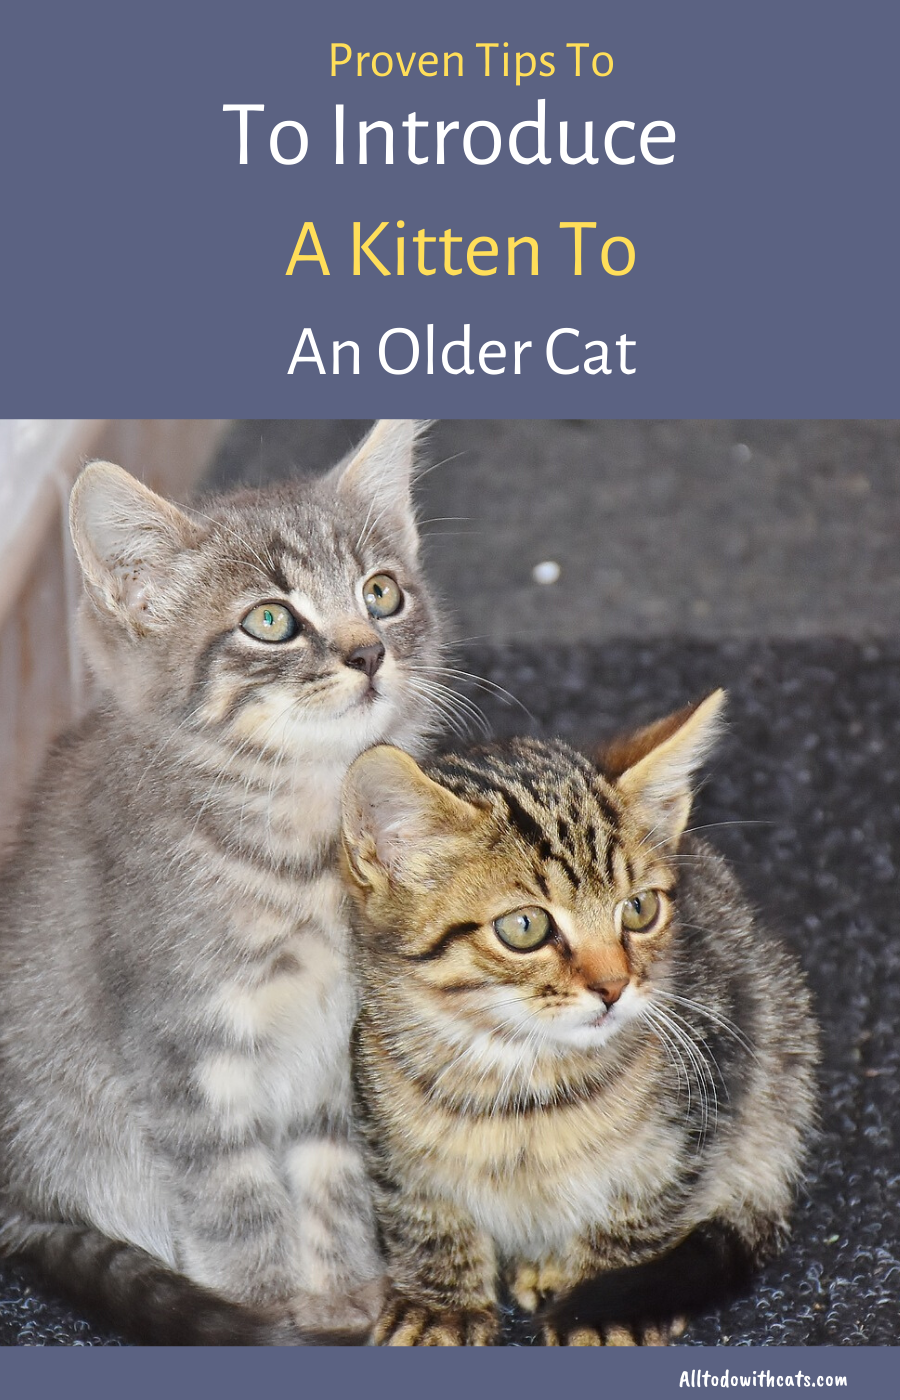 How To Introduce A New Kitten To An Older Cat Proven Tips In 2020 Older Cats Cats Introducing A New Cat